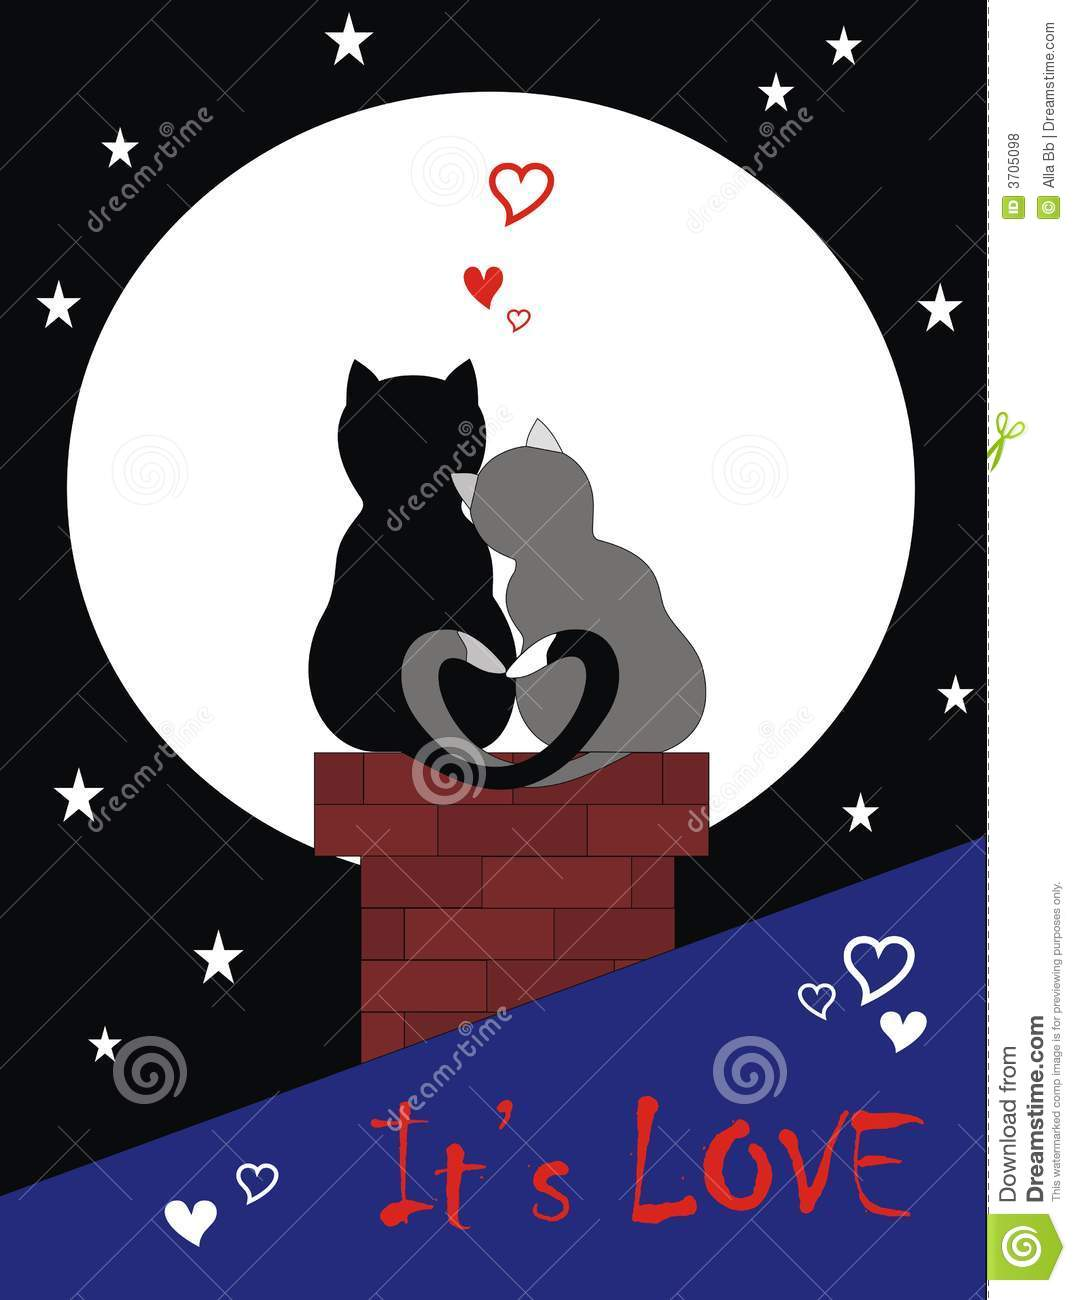 cats in love royalty free stock photos image 3705098 thinking of you clip art free thinking of you clipart gif